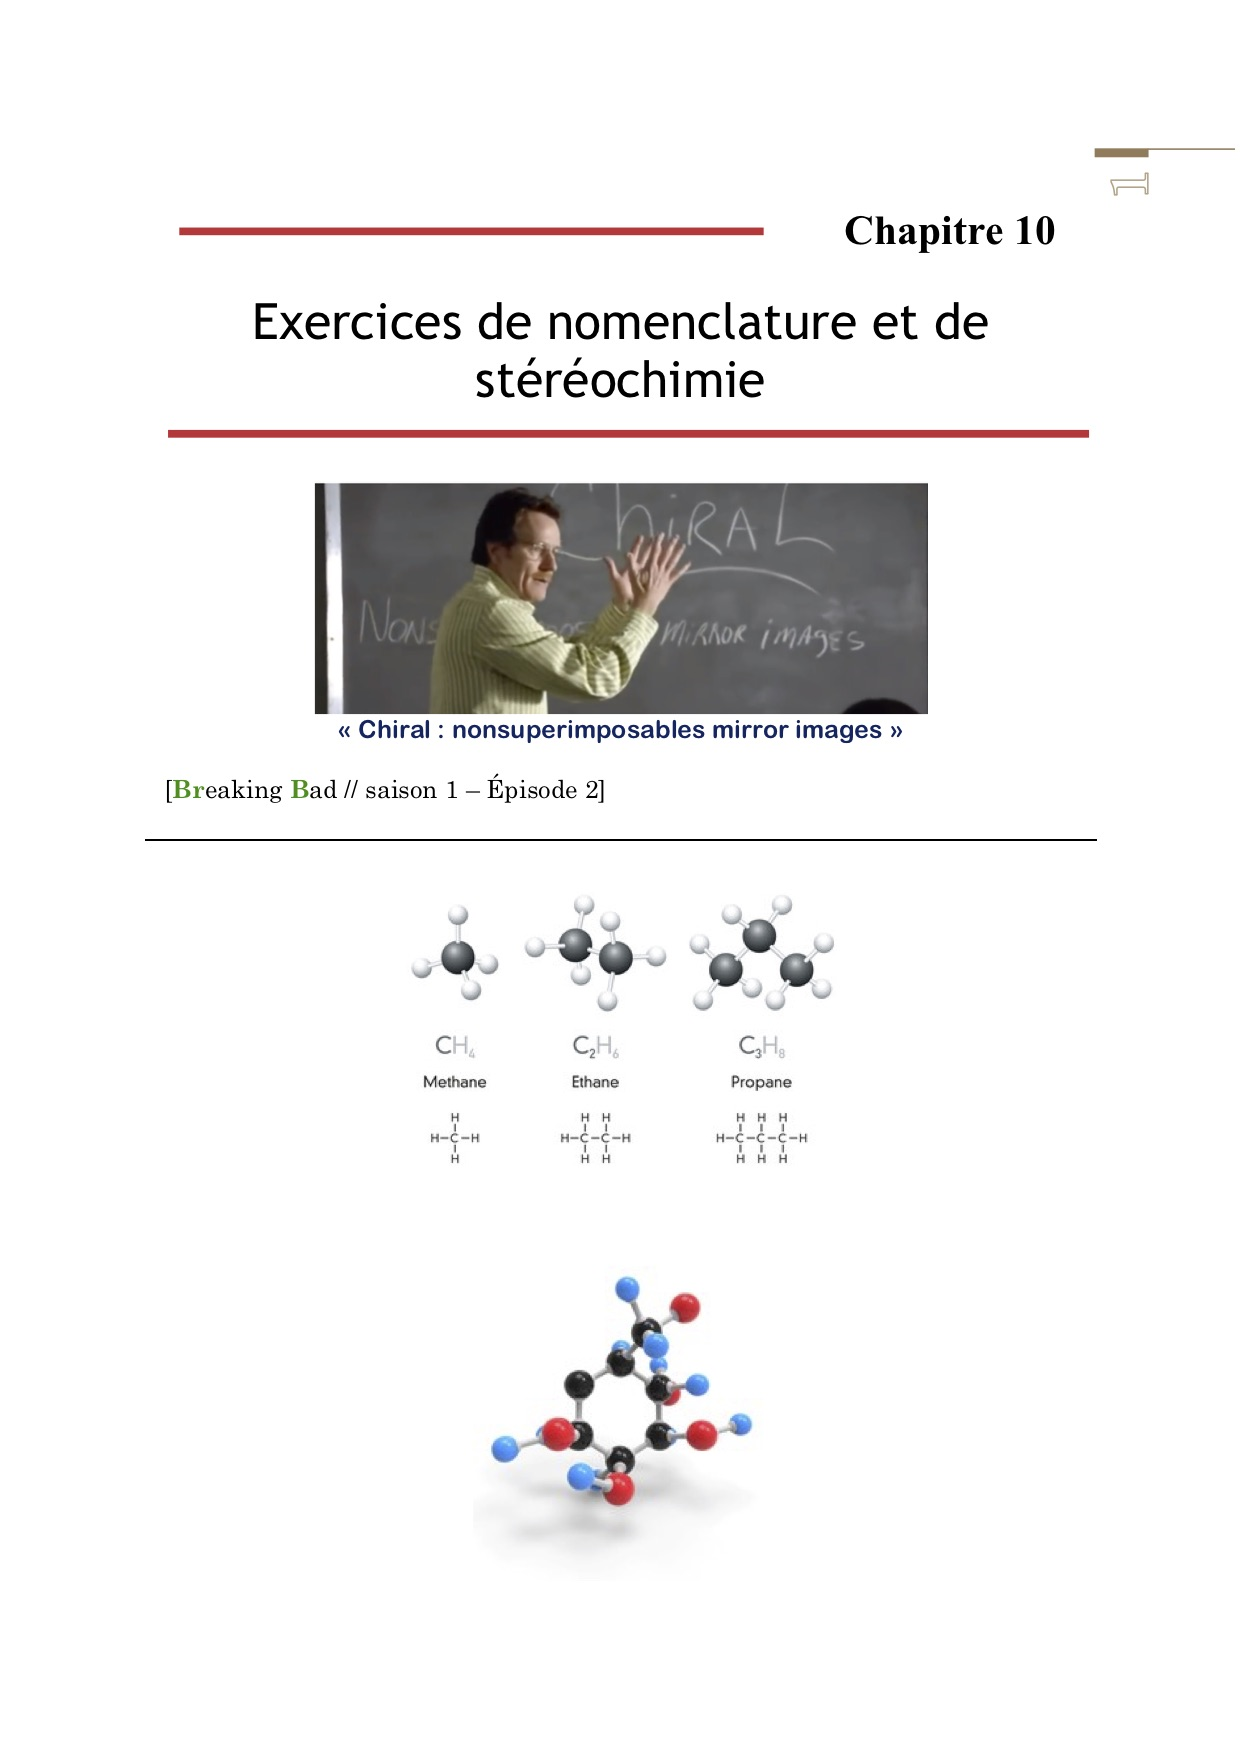 ExercicesStereochimiecouverture